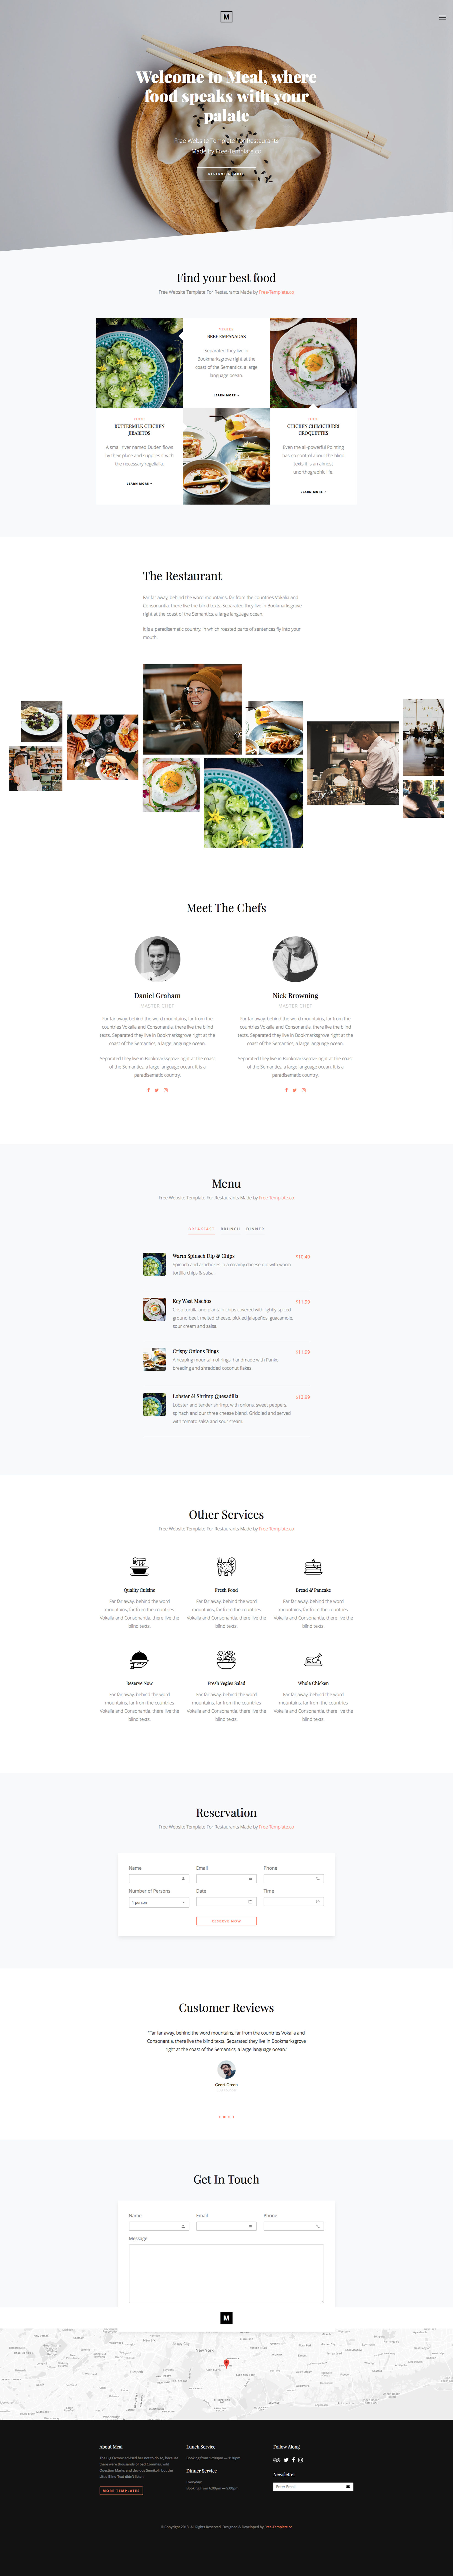 Meal is a well designed and clean free HTML5 one page Bootstrap template for restaurant websites. It comes with awesome features such as a slider, reservation form, smooth animation, and many other cool features. This a one-page template created with Bootstrap 4.